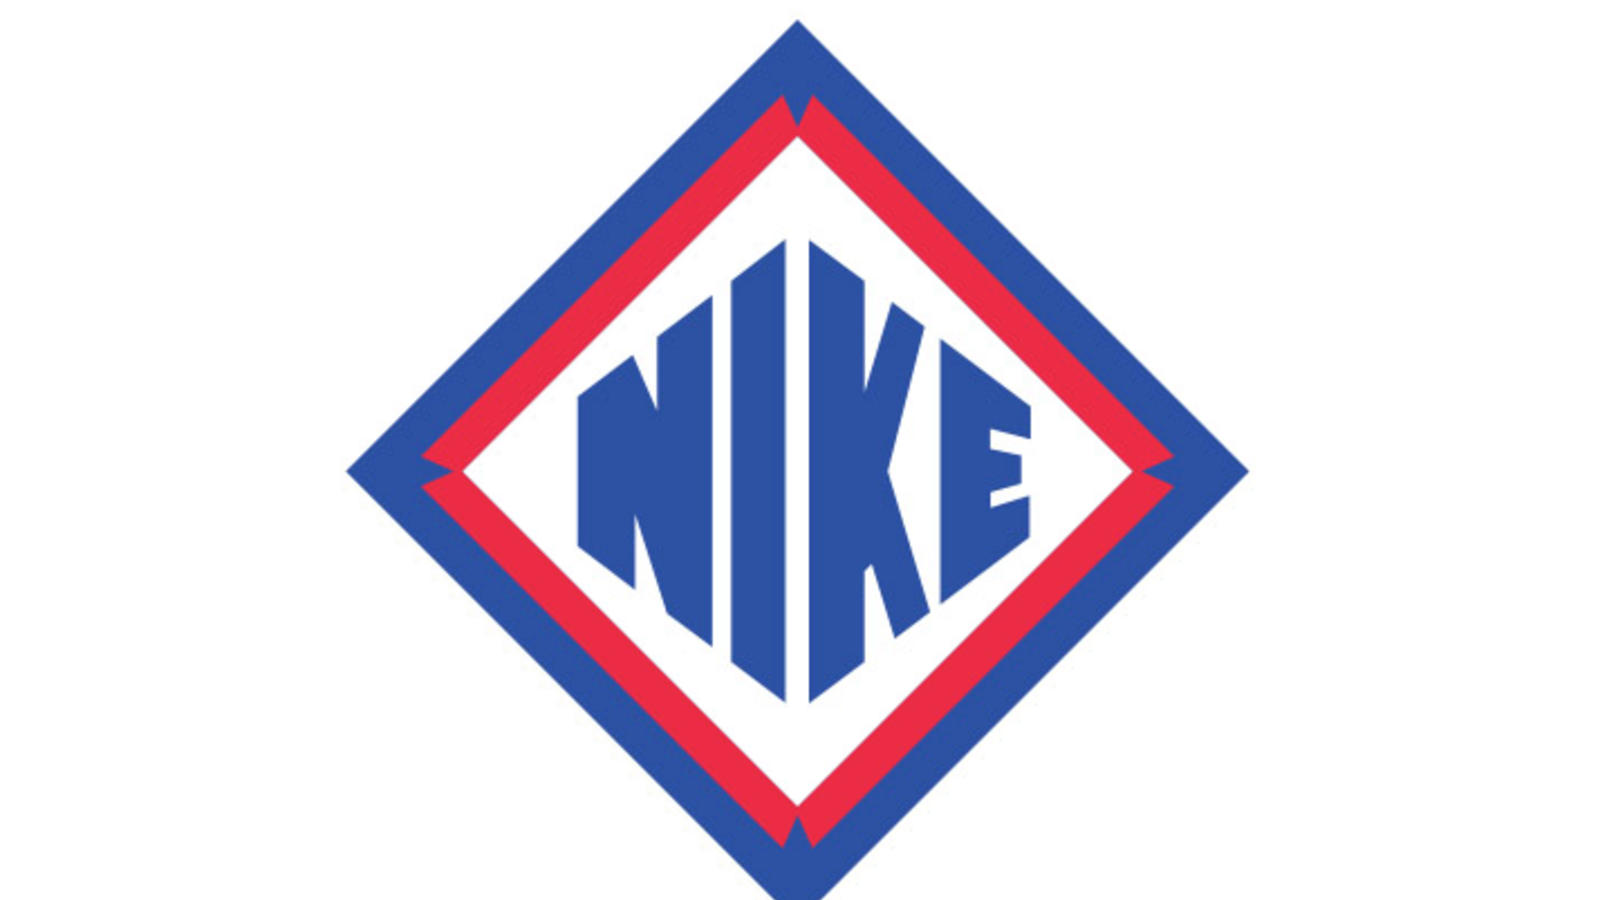 Breaking down the black rose tech fleece collection nike news the nike diamond is a baseball logo that was created in 1989 biocorpaavc